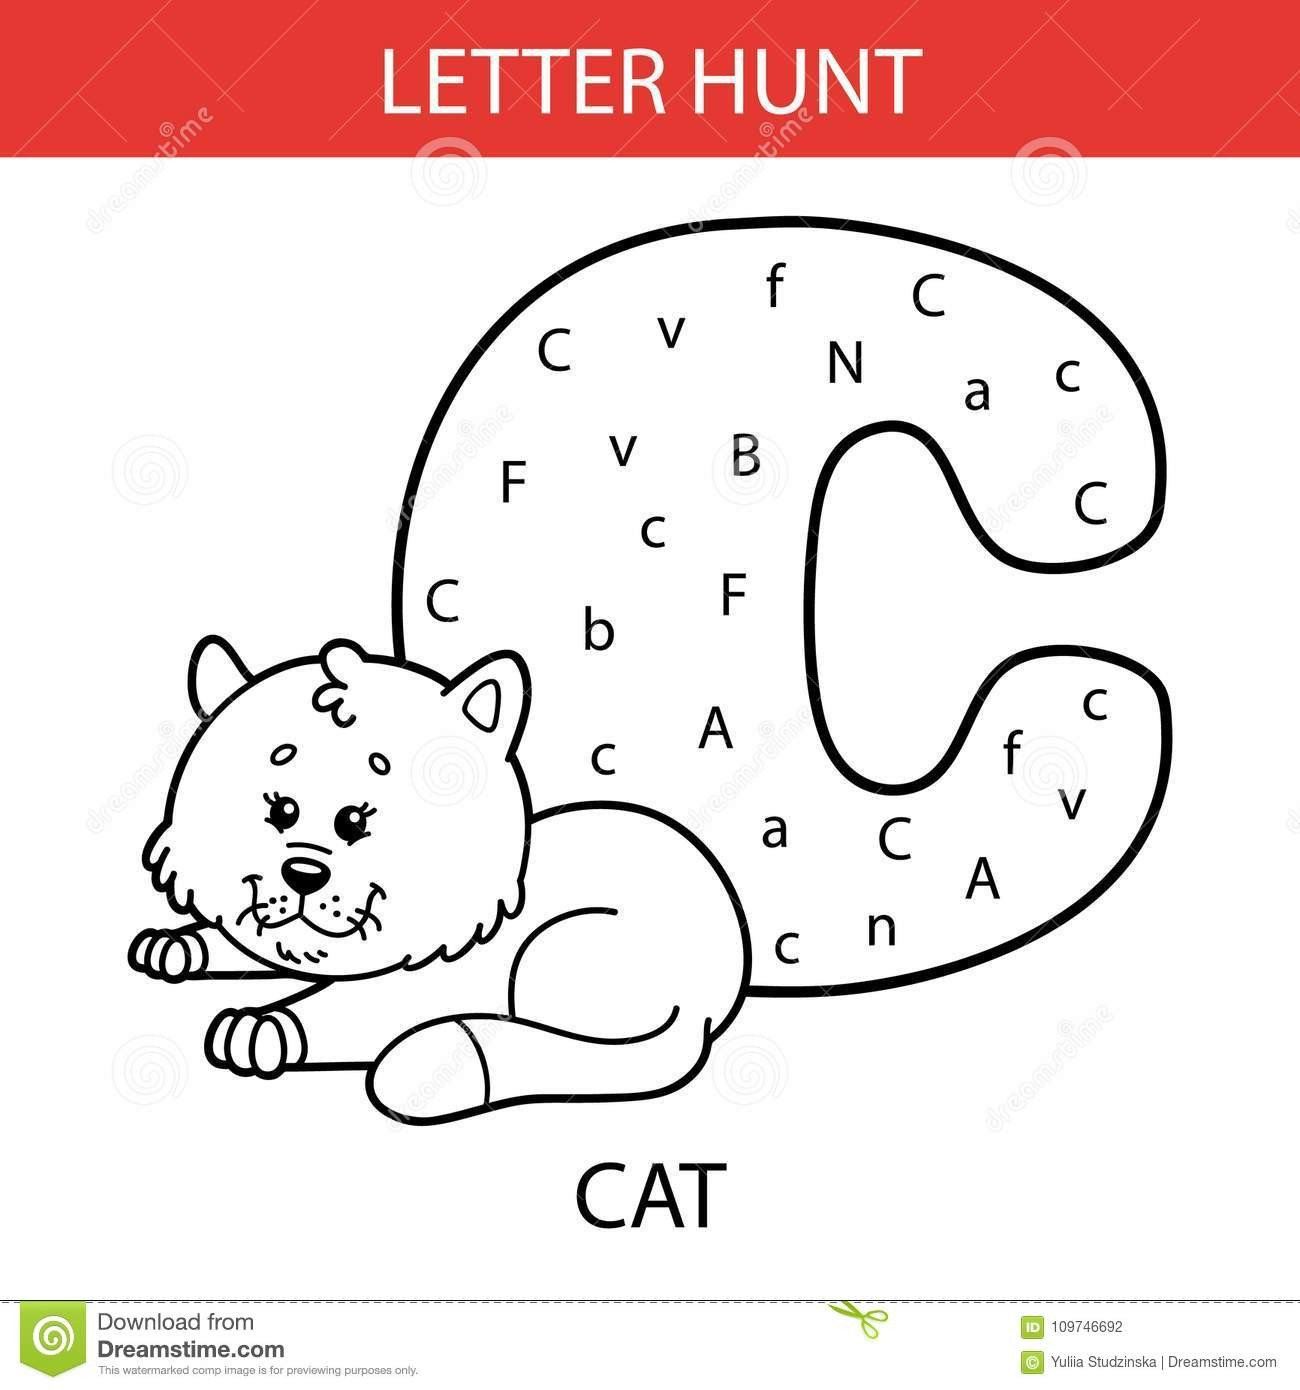 Letter Hunt Worksheet Animal Letter Hunt Cat Stock Vector Illustration Of Hunt